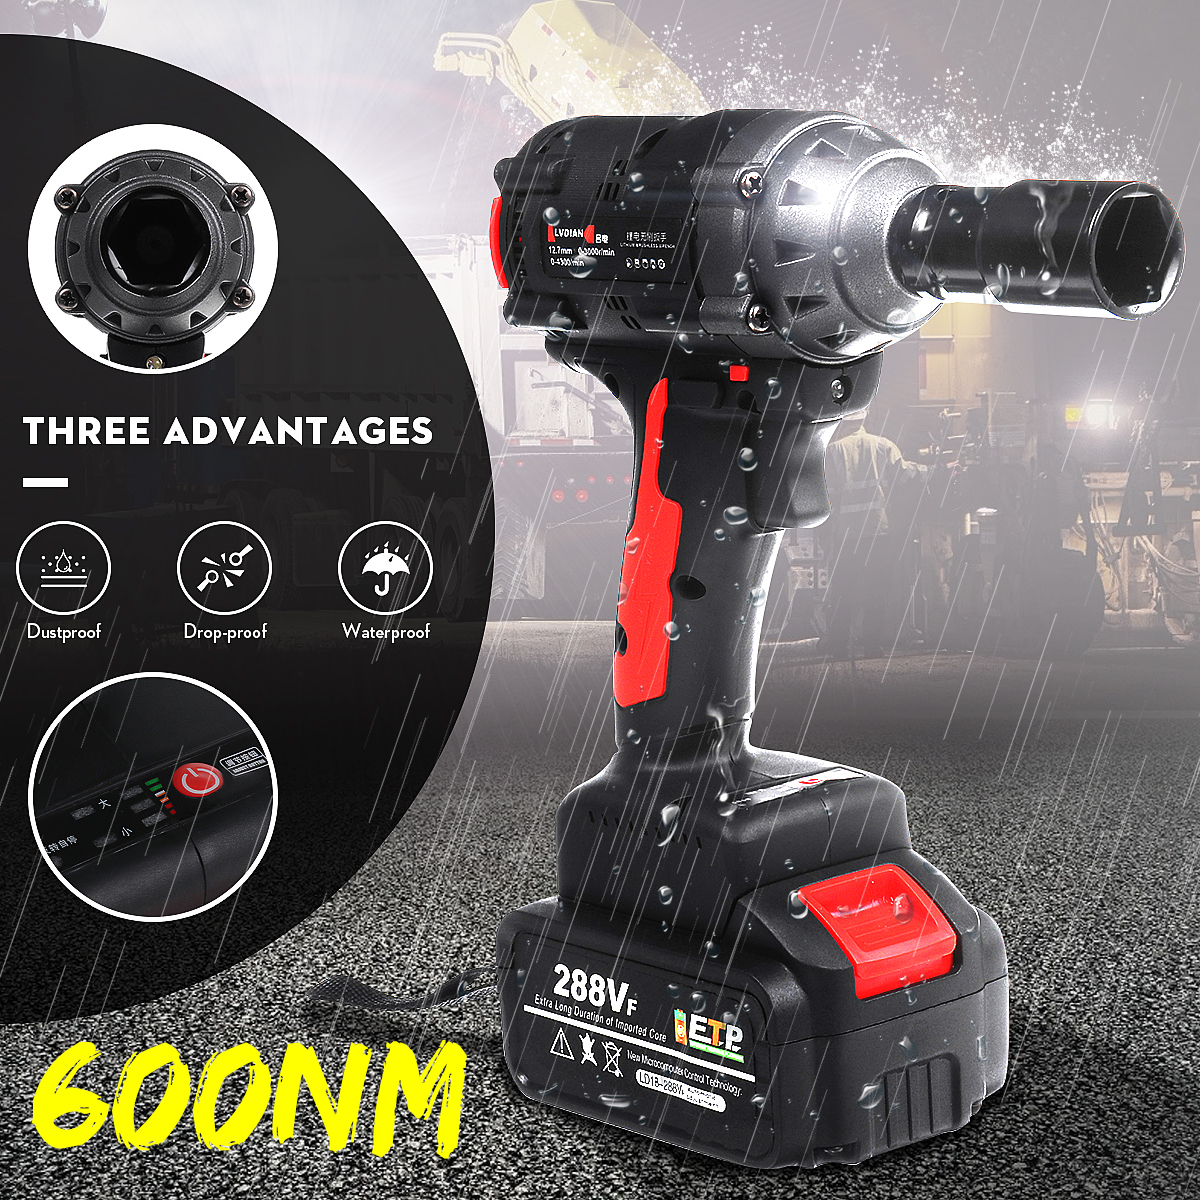 600Nm High Torque 288VF 19800mAh Waterproof Brushless Wrench LED light Rechargeable Cordless Electric Impact Drill Screwdriver|Electric Wrenches| |  - title=